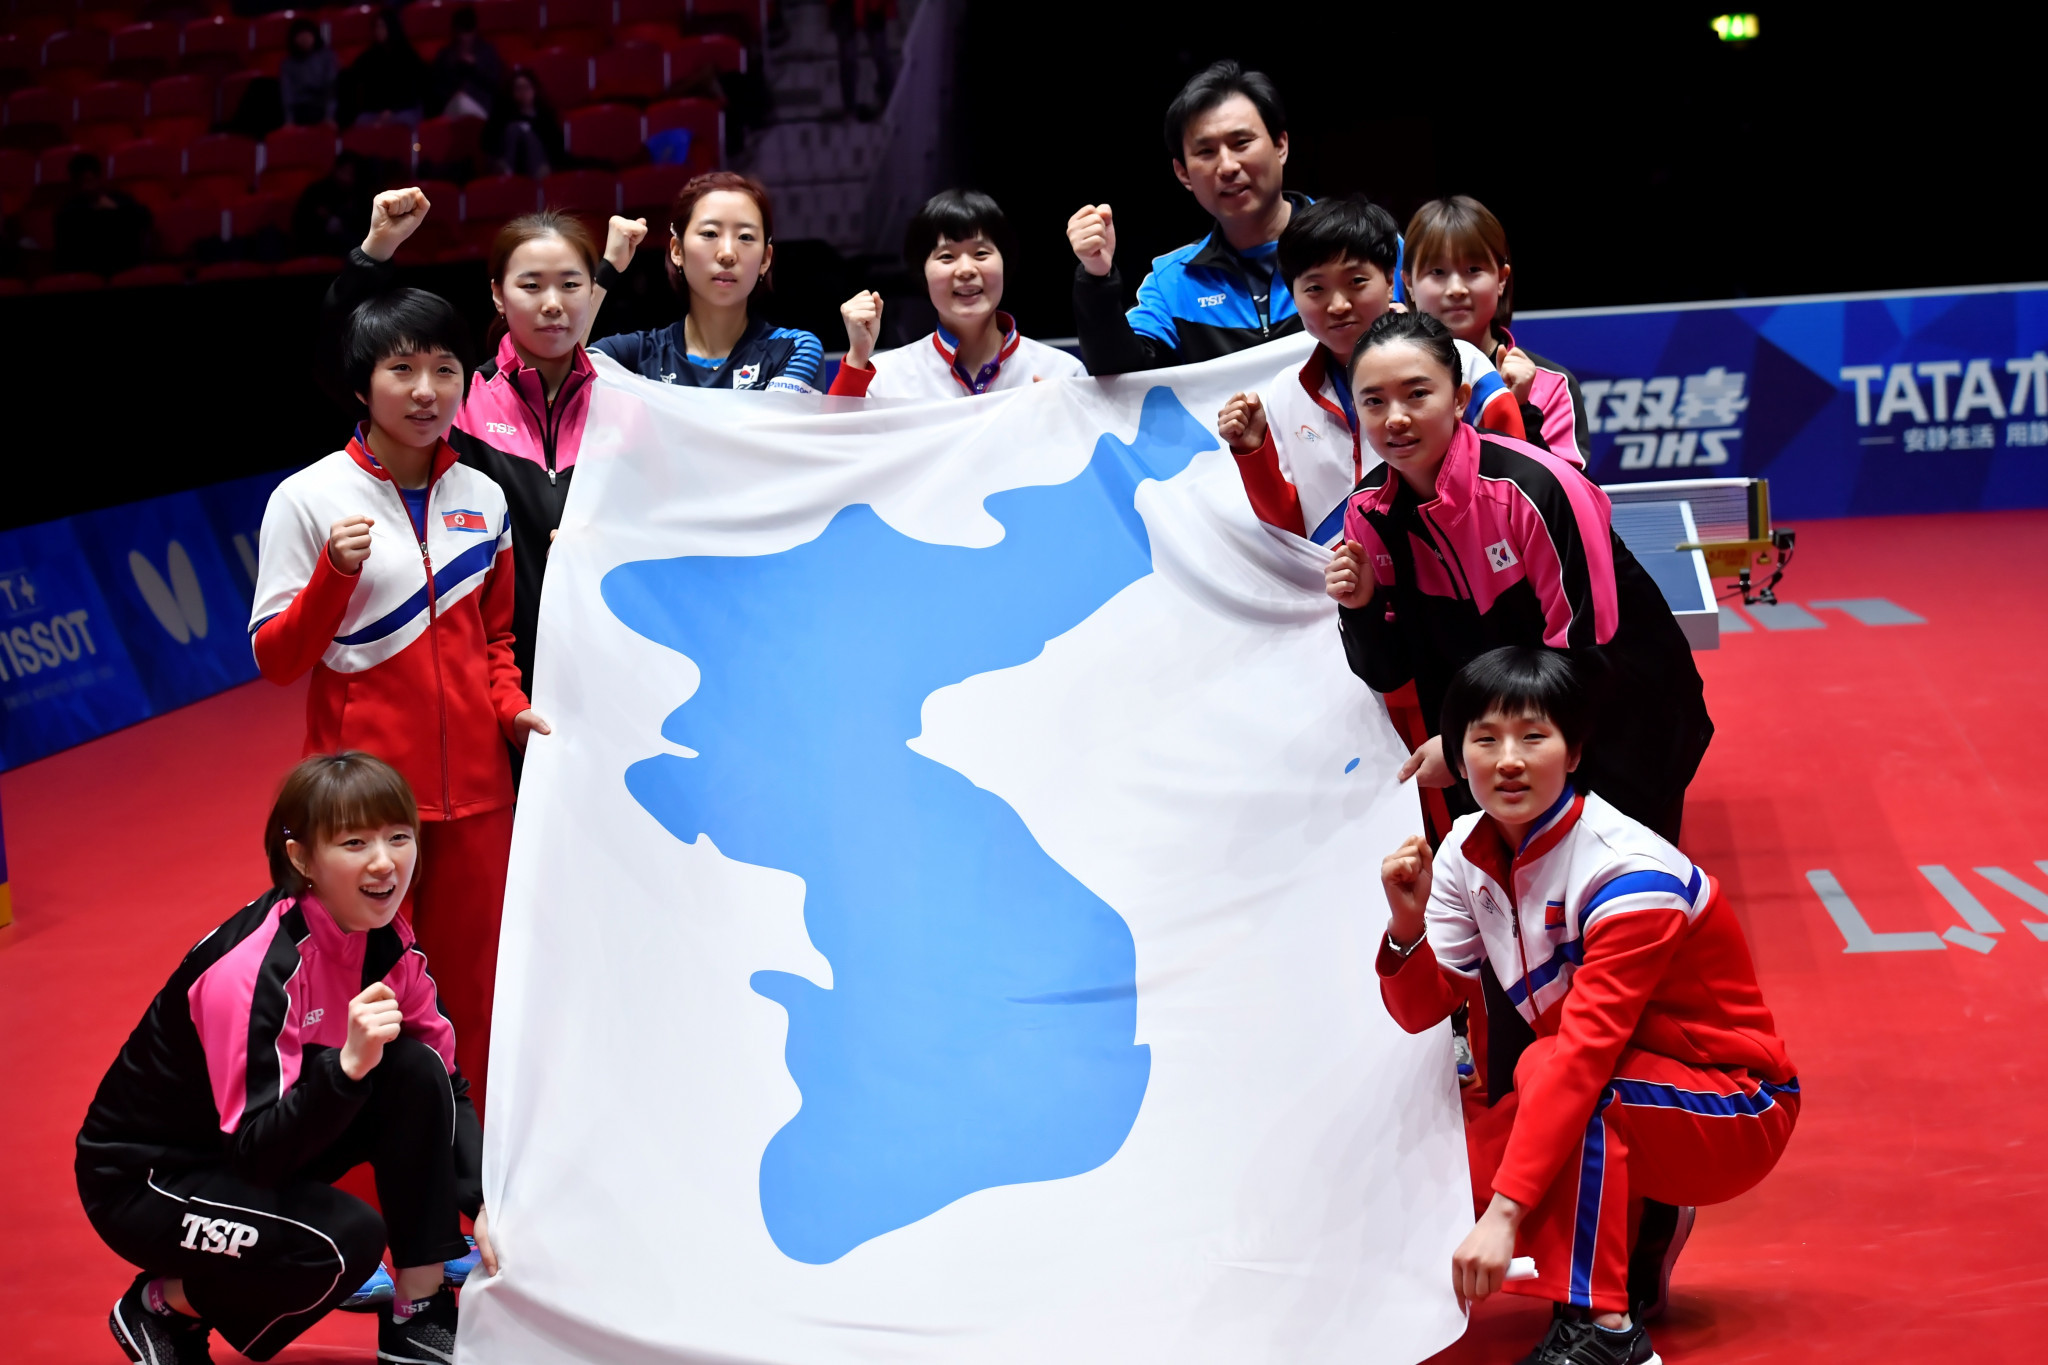 The joint Korean flag, seen here at the World Team Table Tennis Championships, will be used in Mongolia ©Getty Images